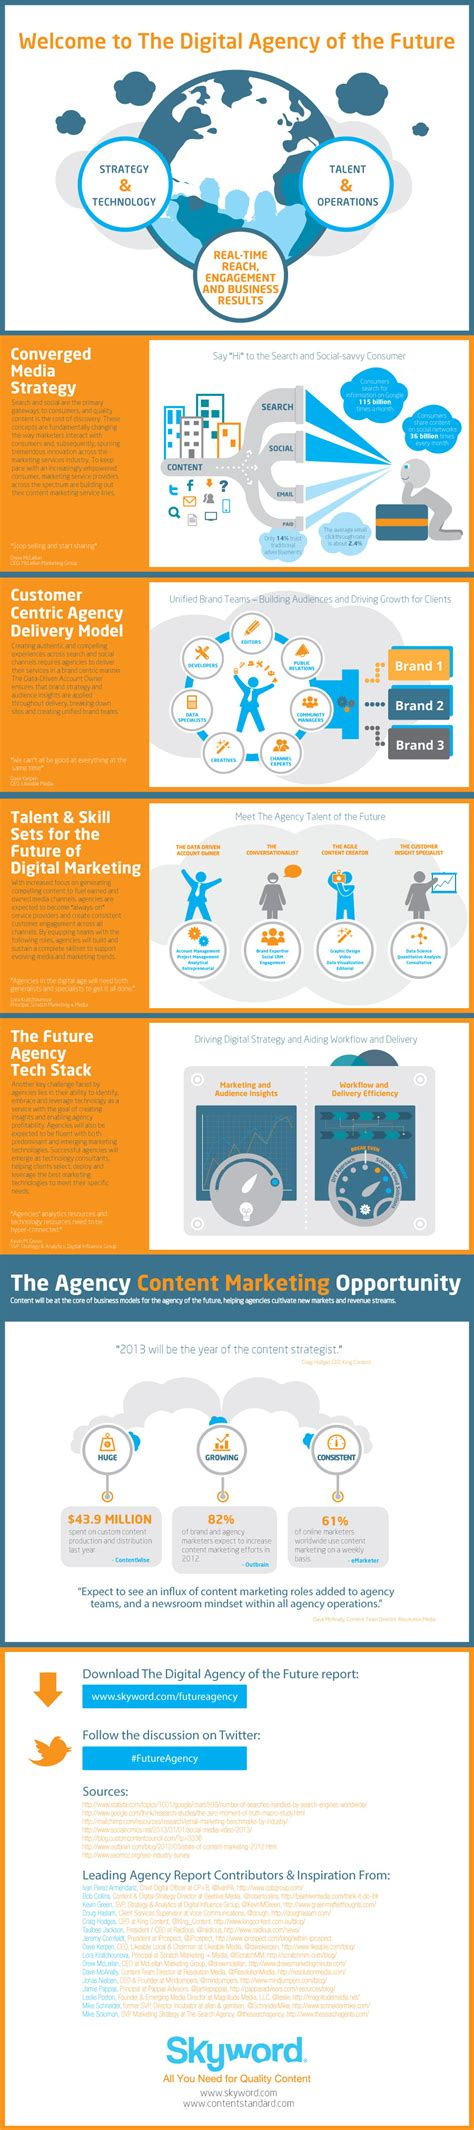 Digital Agency - transforming into the digital marketing agency of the future